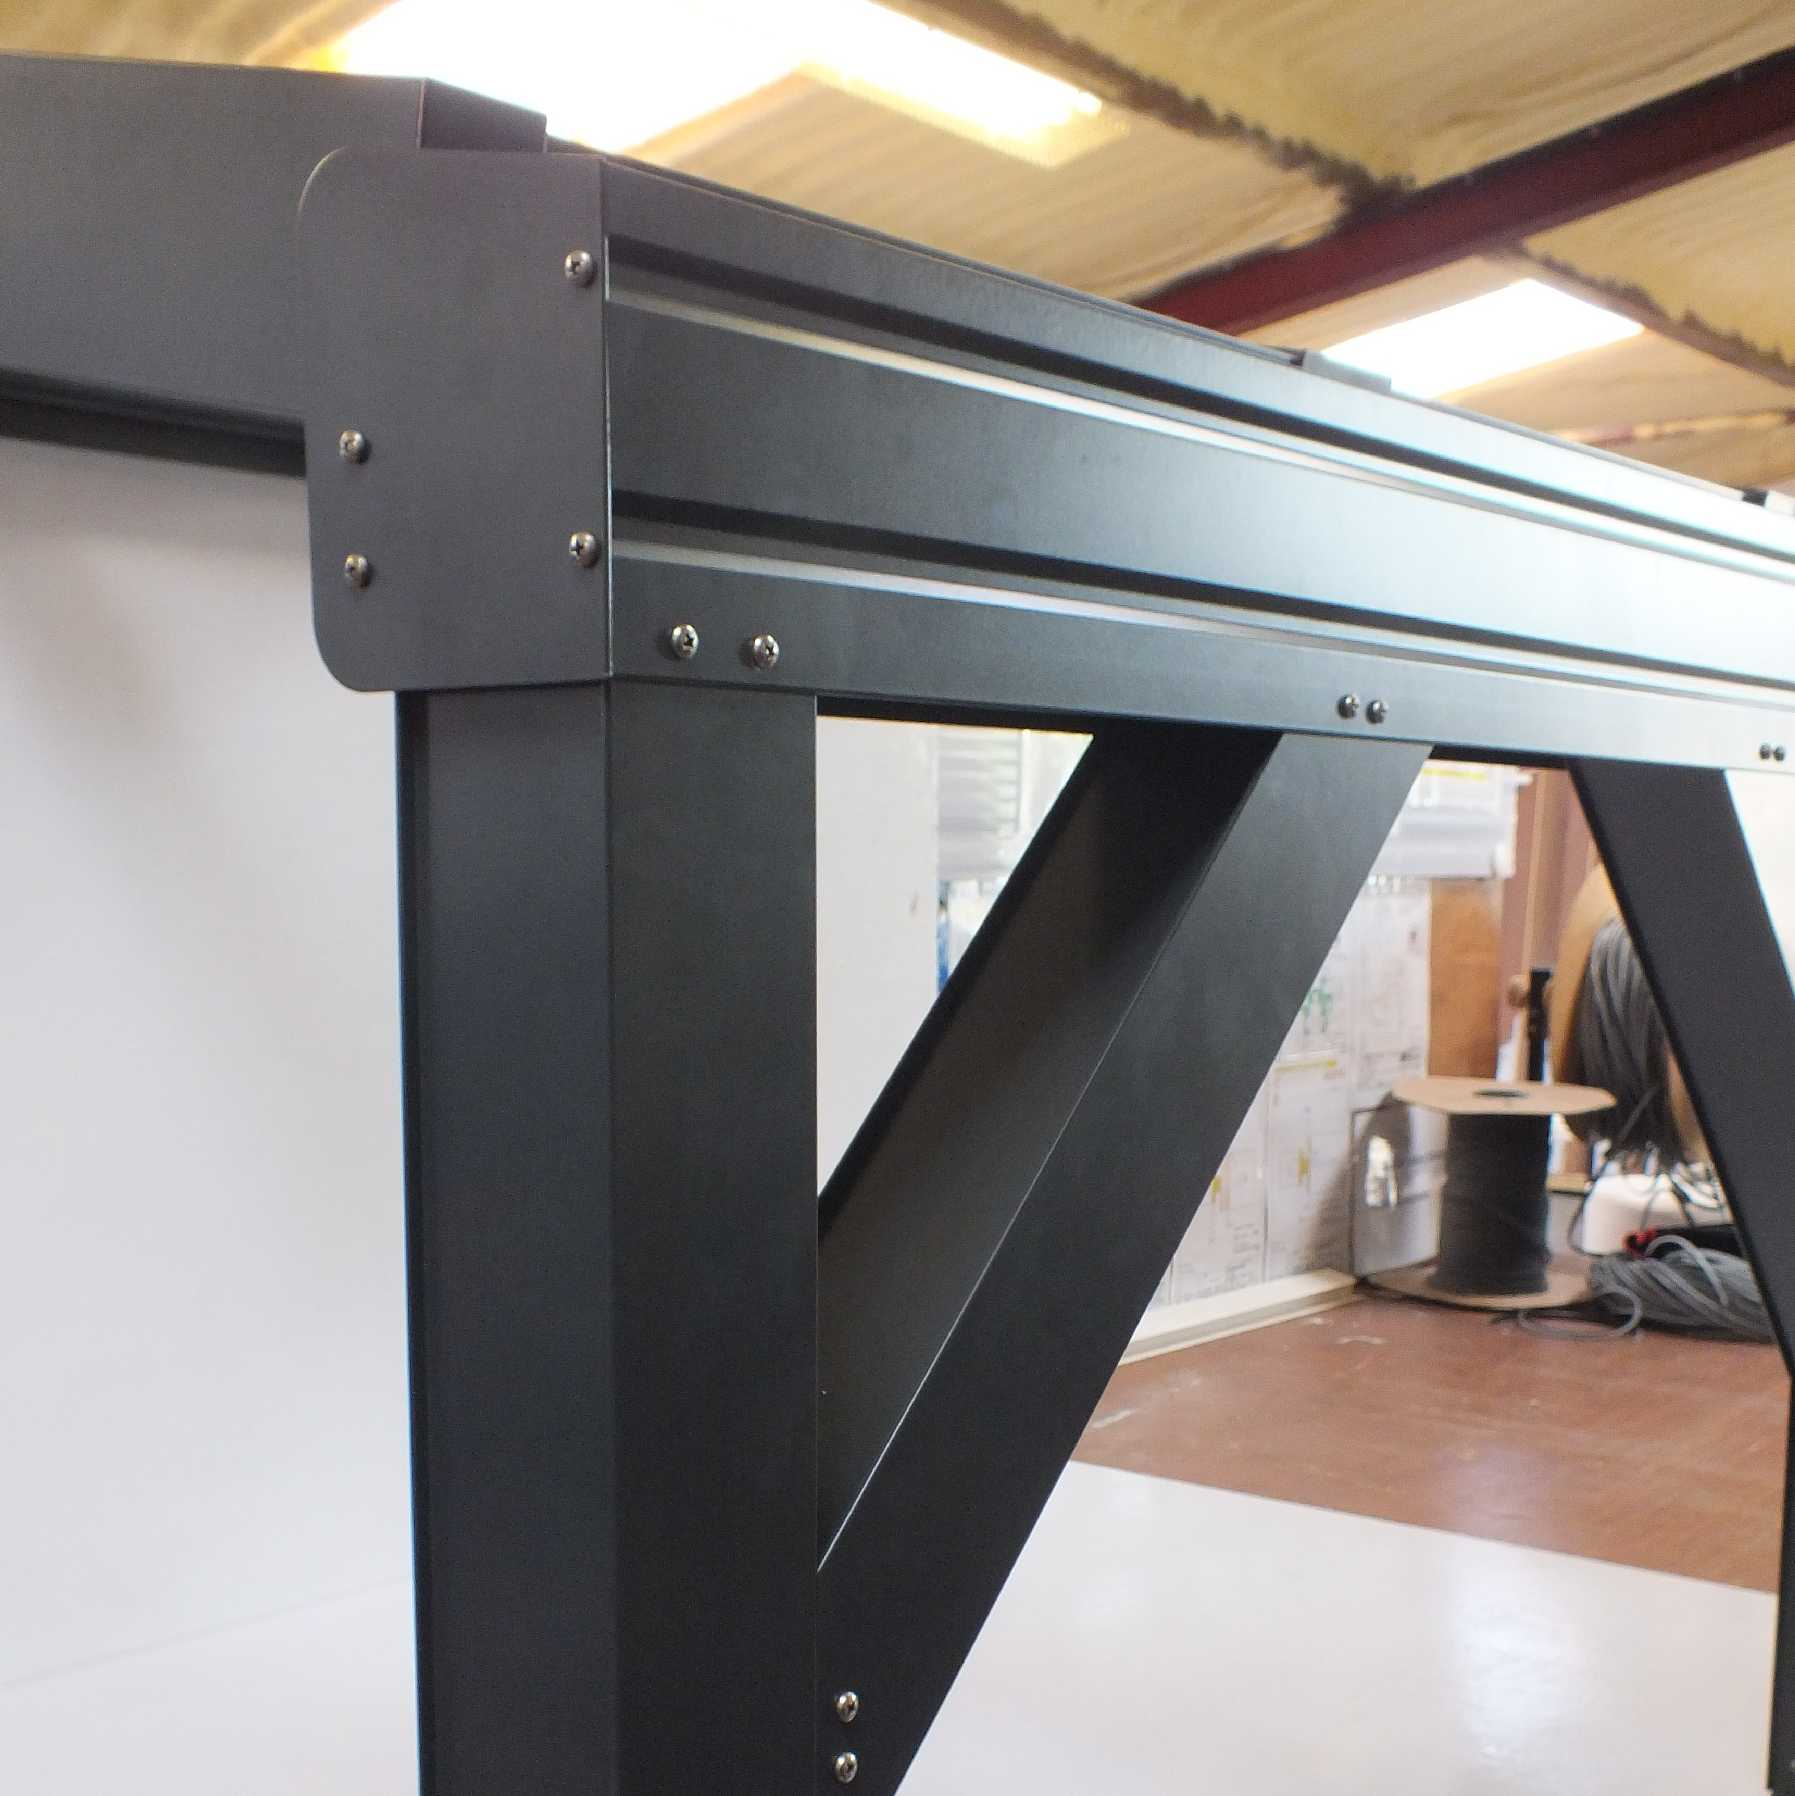 Omega Smart Lean-To Canopy, Anthracite Grey, UNGLAZED for 6mm Glazing - 8.4m (W) x 2.5m (P), (4) Supporting Posts from Omega Build